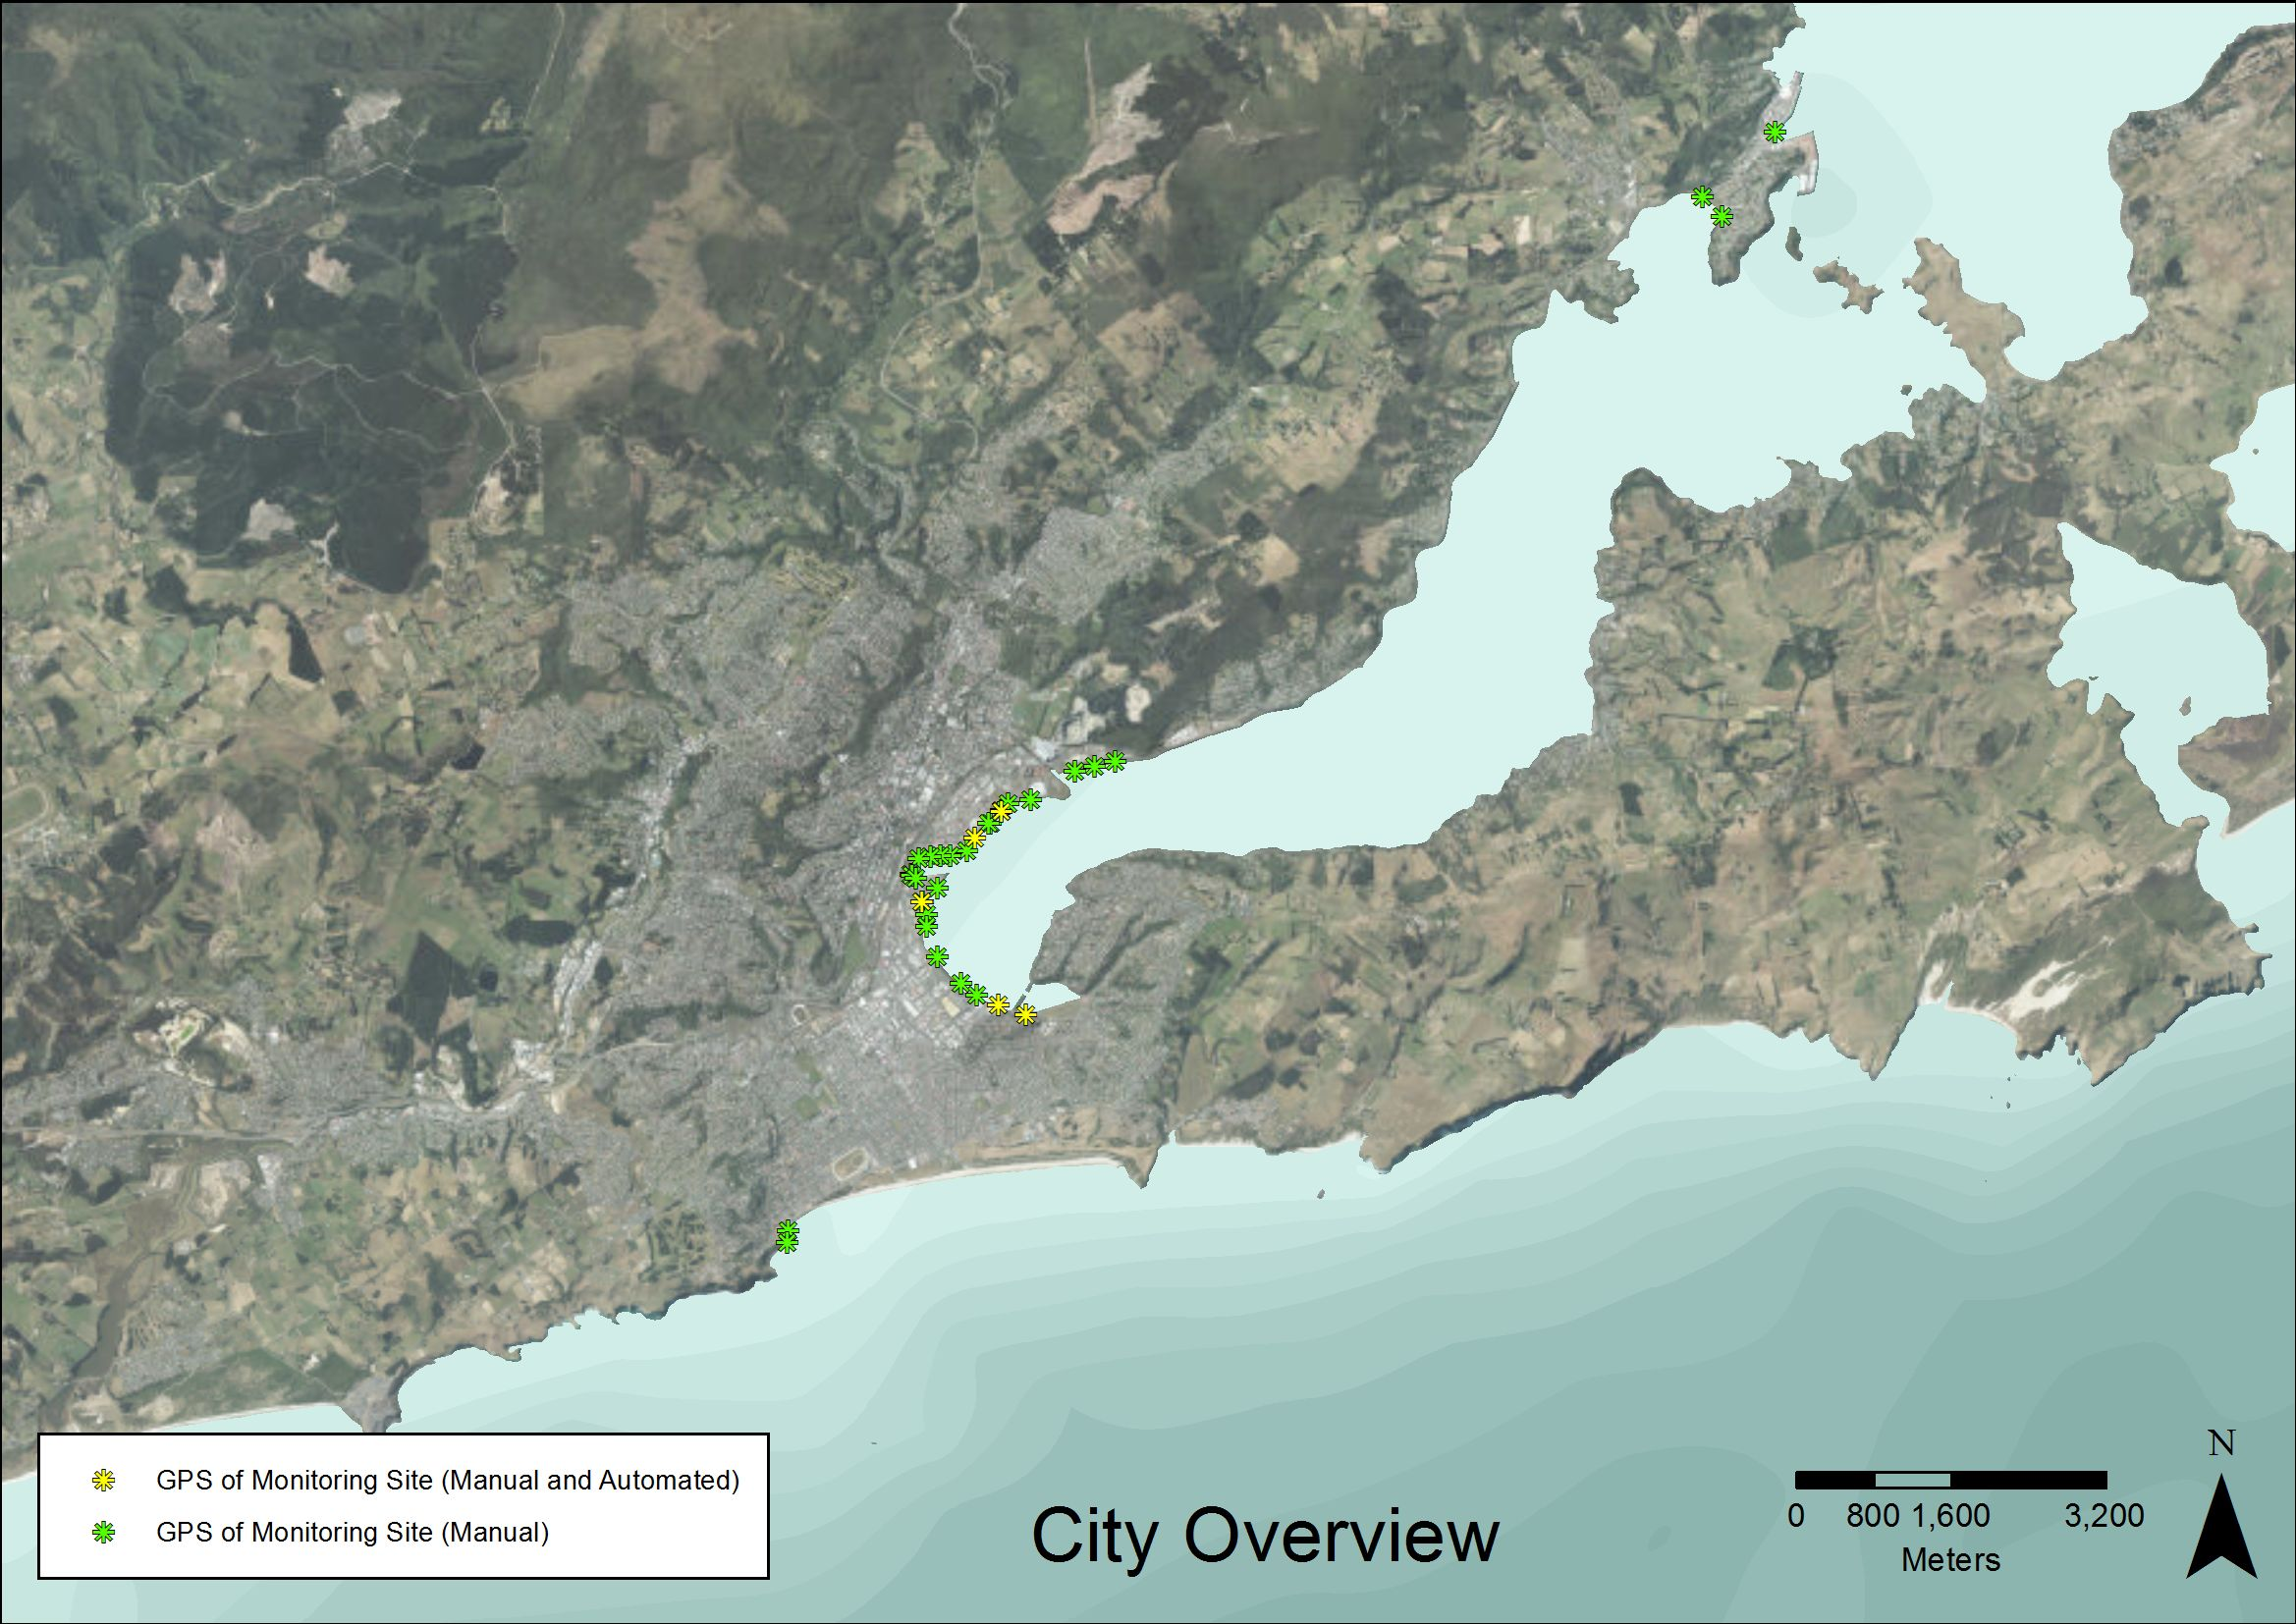 City overview of outfall locations covered by consents